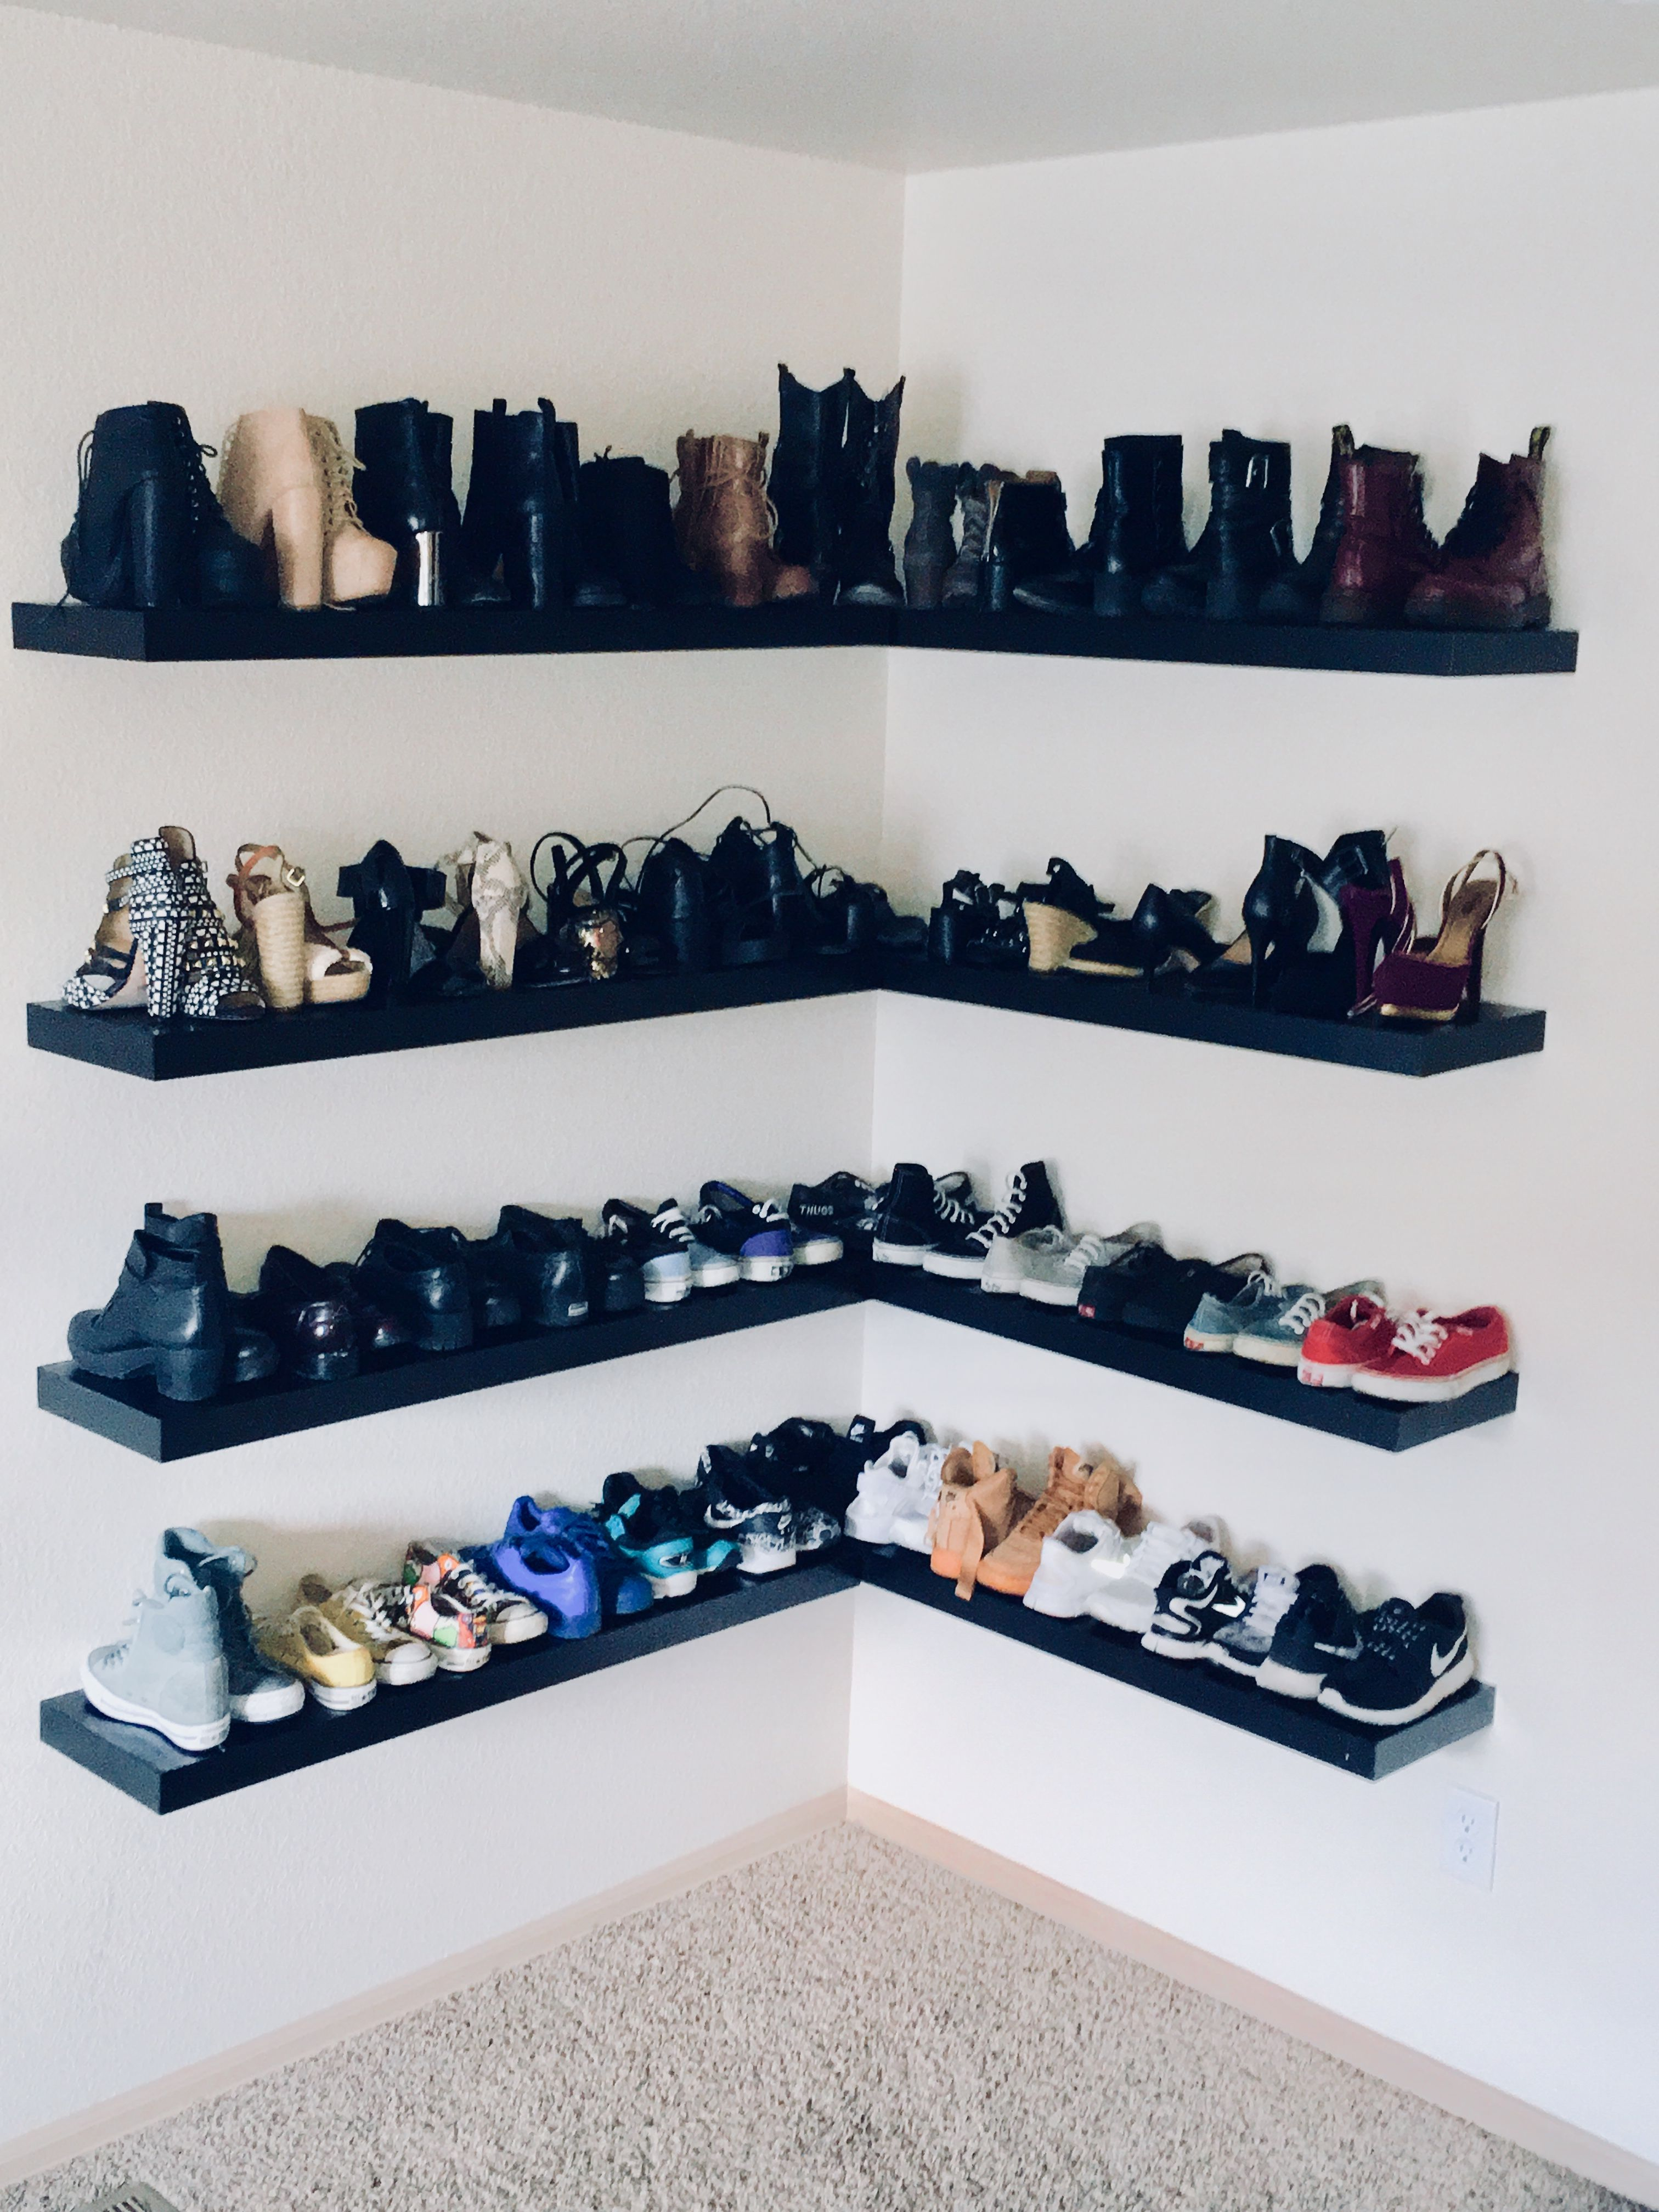 Ikea Lack Floating Shoe Shelves Shoe Shelves Shoe Shelf Ikea